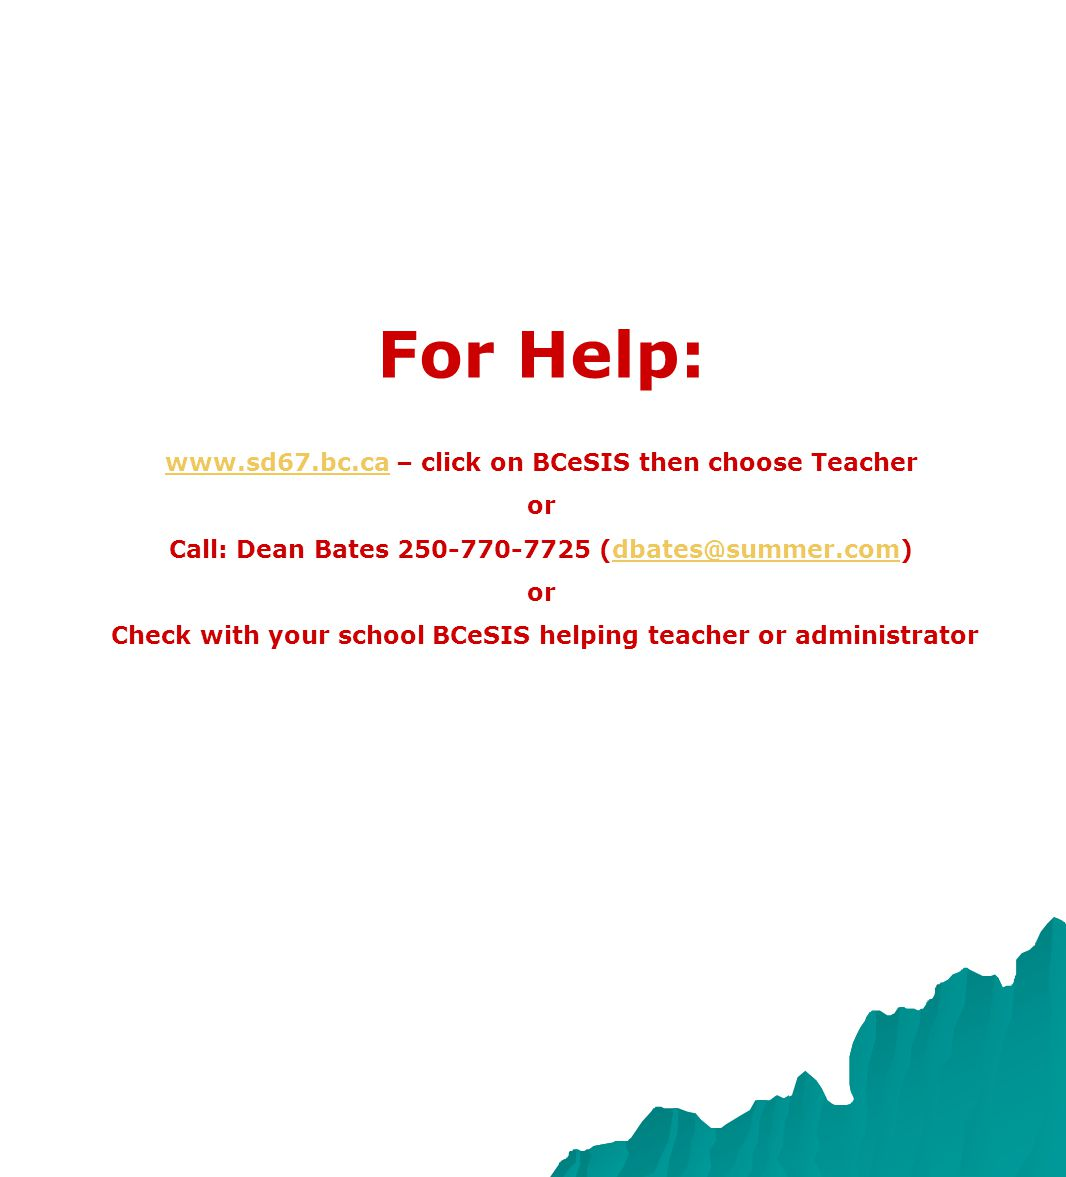 For Help: www.sd67.bc.cawww.sd67.bc.ca – click on BCeSIS then choose Teacher or Call: Dean Bates 250-770-7725 (dbates@summer.com)dbates@summer.com or Check with your school BCeSIS helping teacher or administrator